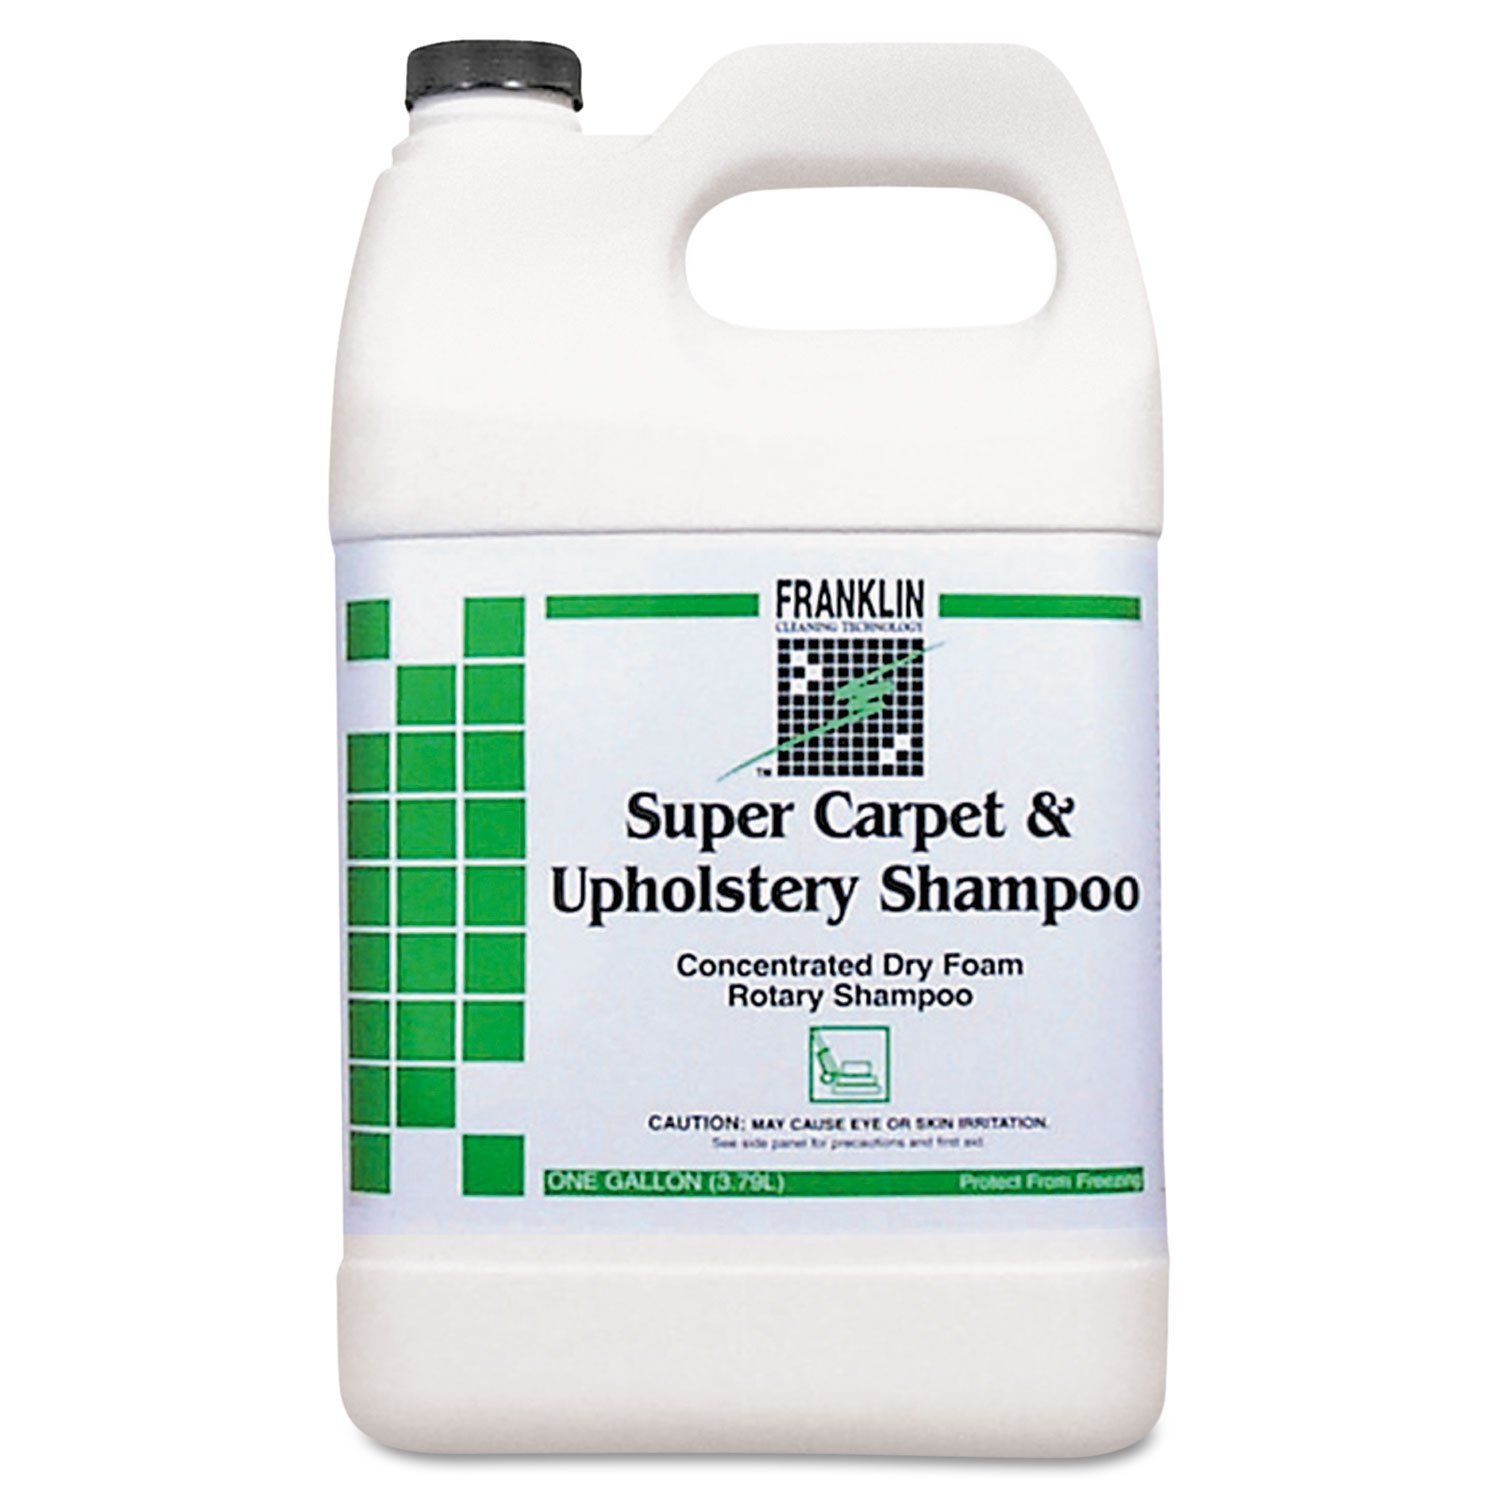 Franklin Cleaning Technology F538022 Super Carpet & Upholstery Shampoo, 1gal Bottle by Unknown